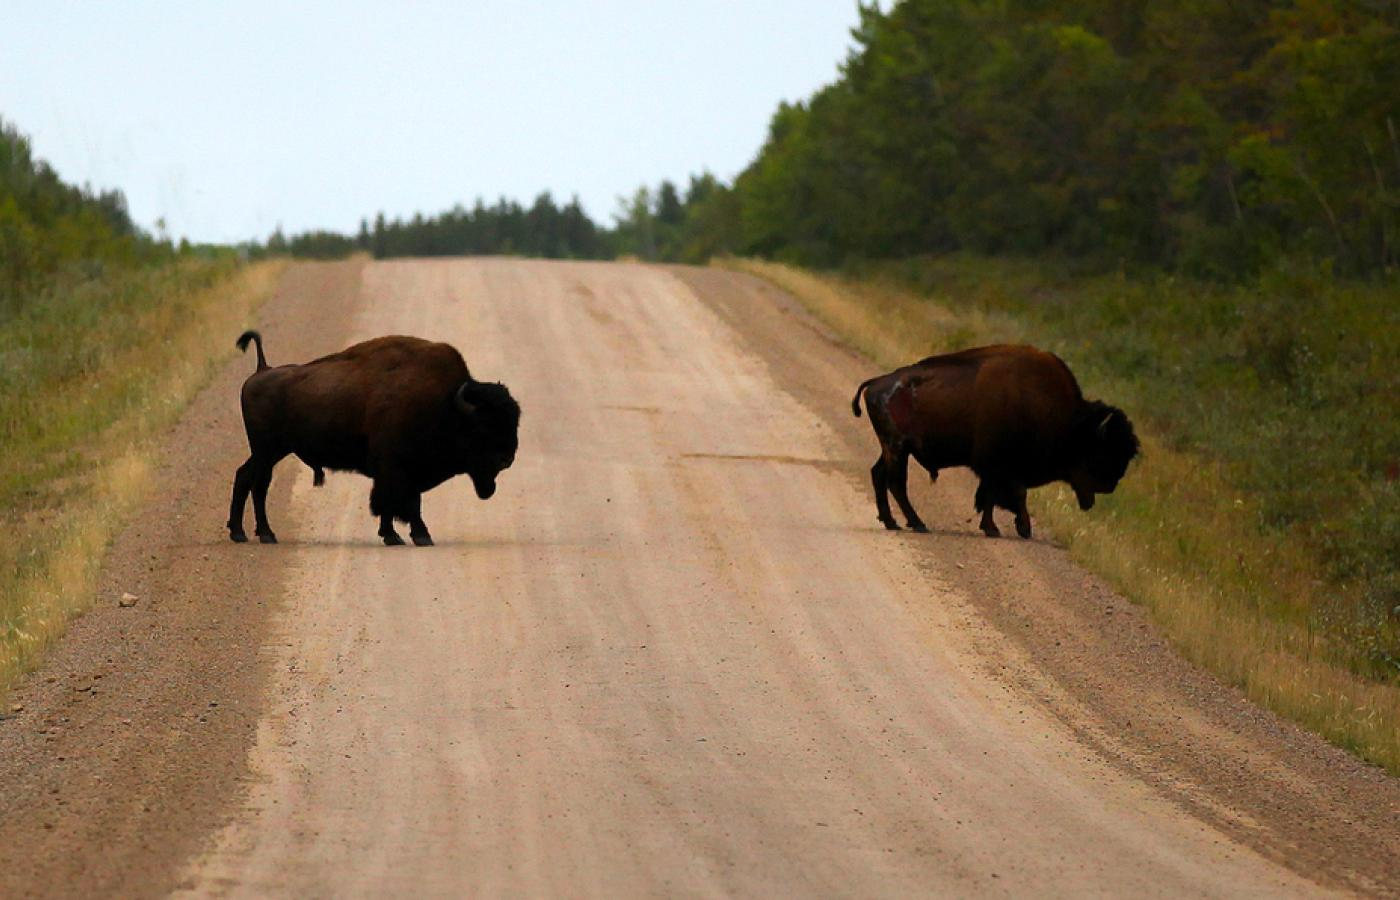 Wood bison on the highway in Canada's Northwest Territories